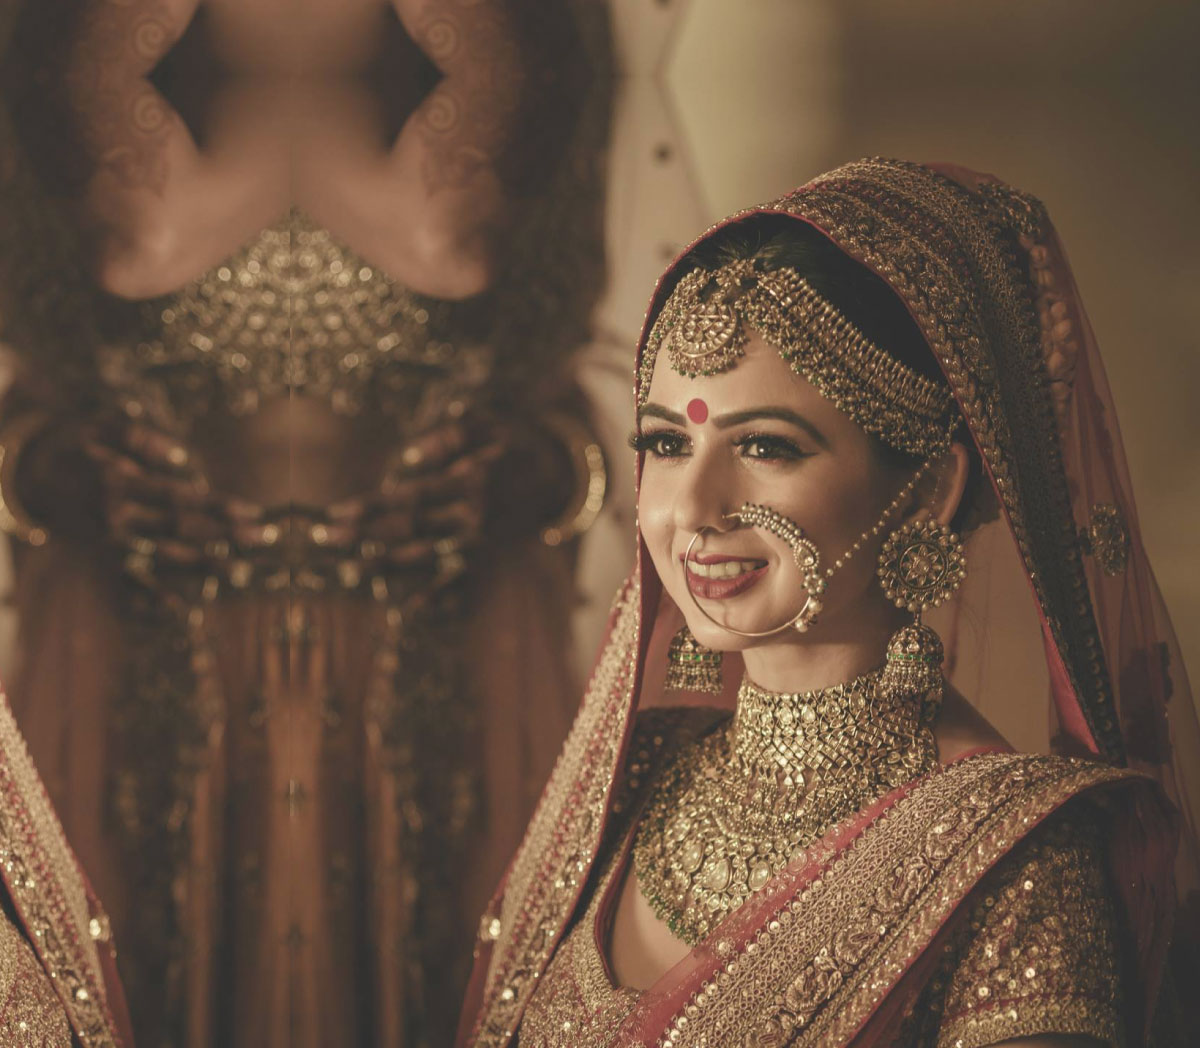 indian bride| traditional Indian jewellery| indian wedding jewellery| wed me good| indian weddings| indian brides | nath | mathapathi| polki necklace| delhi bride | bridal look| Indian Bridal Jewellery | Polki Ring | chandbala earrings | amarpali | kangana ranaut |rakyans